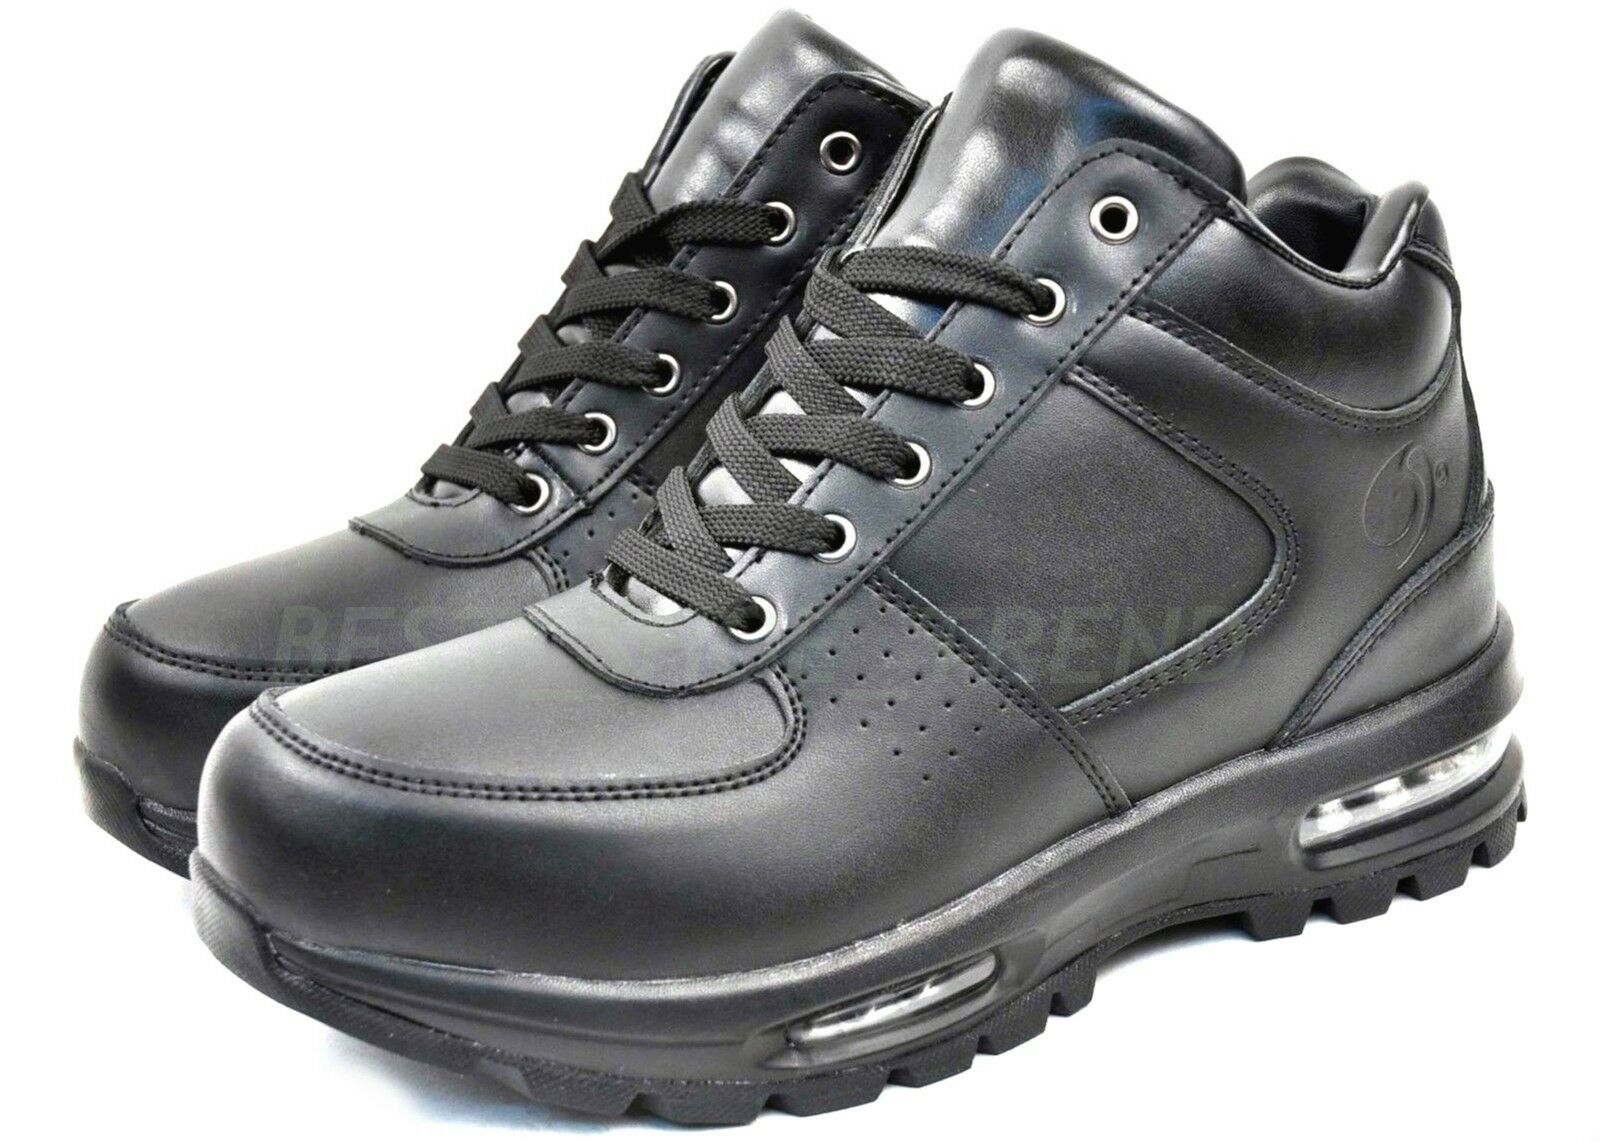 NEW MEN AIR HEEL LEATHER ACG STYLE WINTER SNOW HIKING TRAIL BOOTS